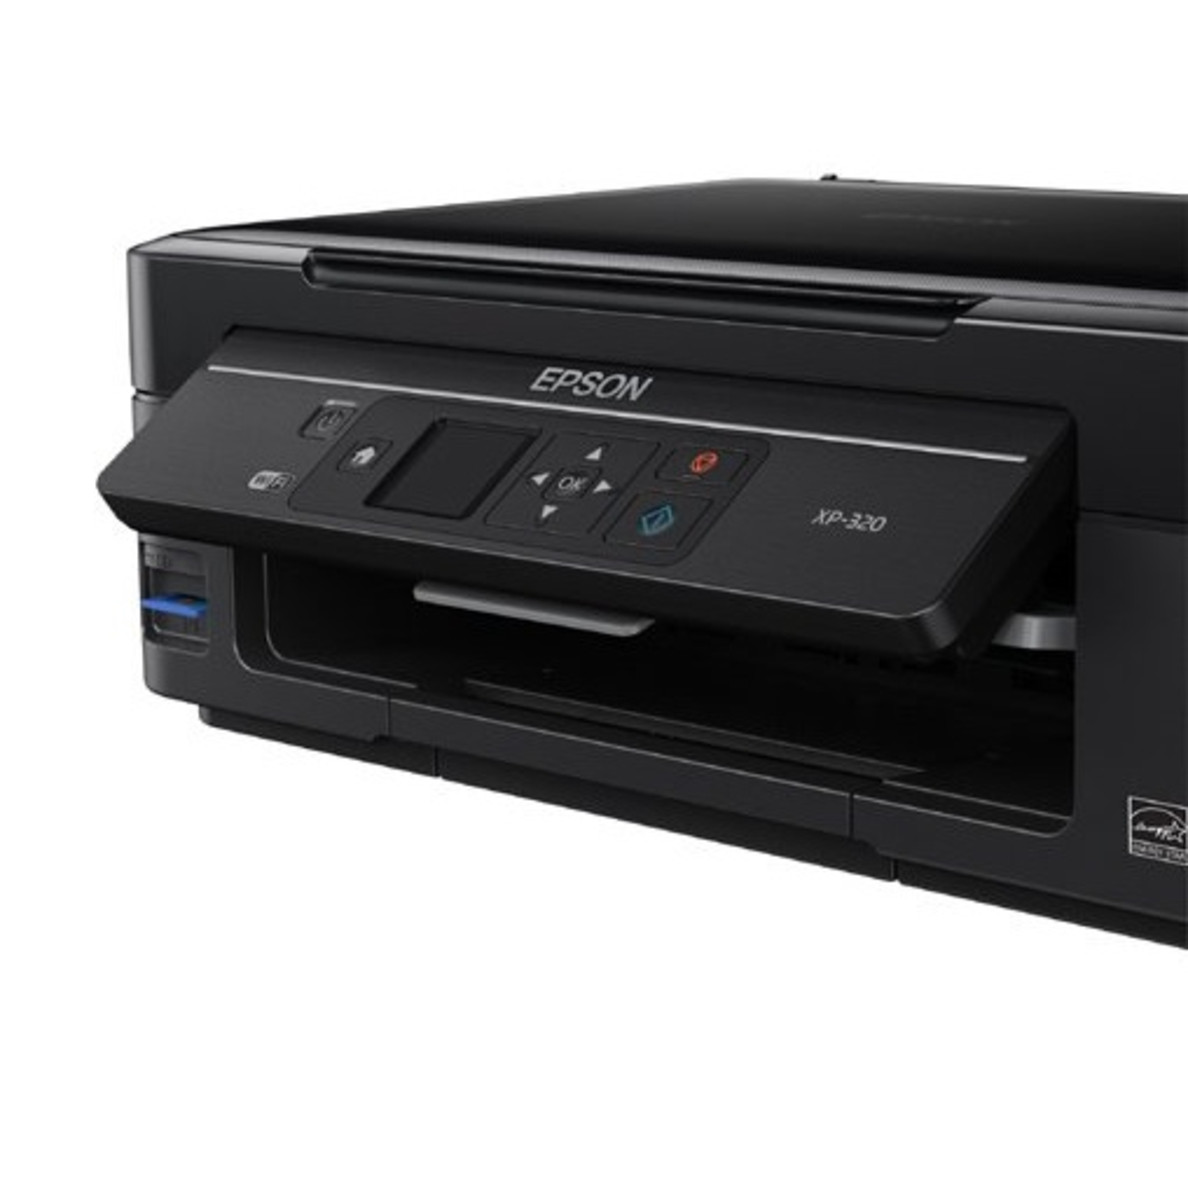 Epson Expression XP320 Inkjet Printer